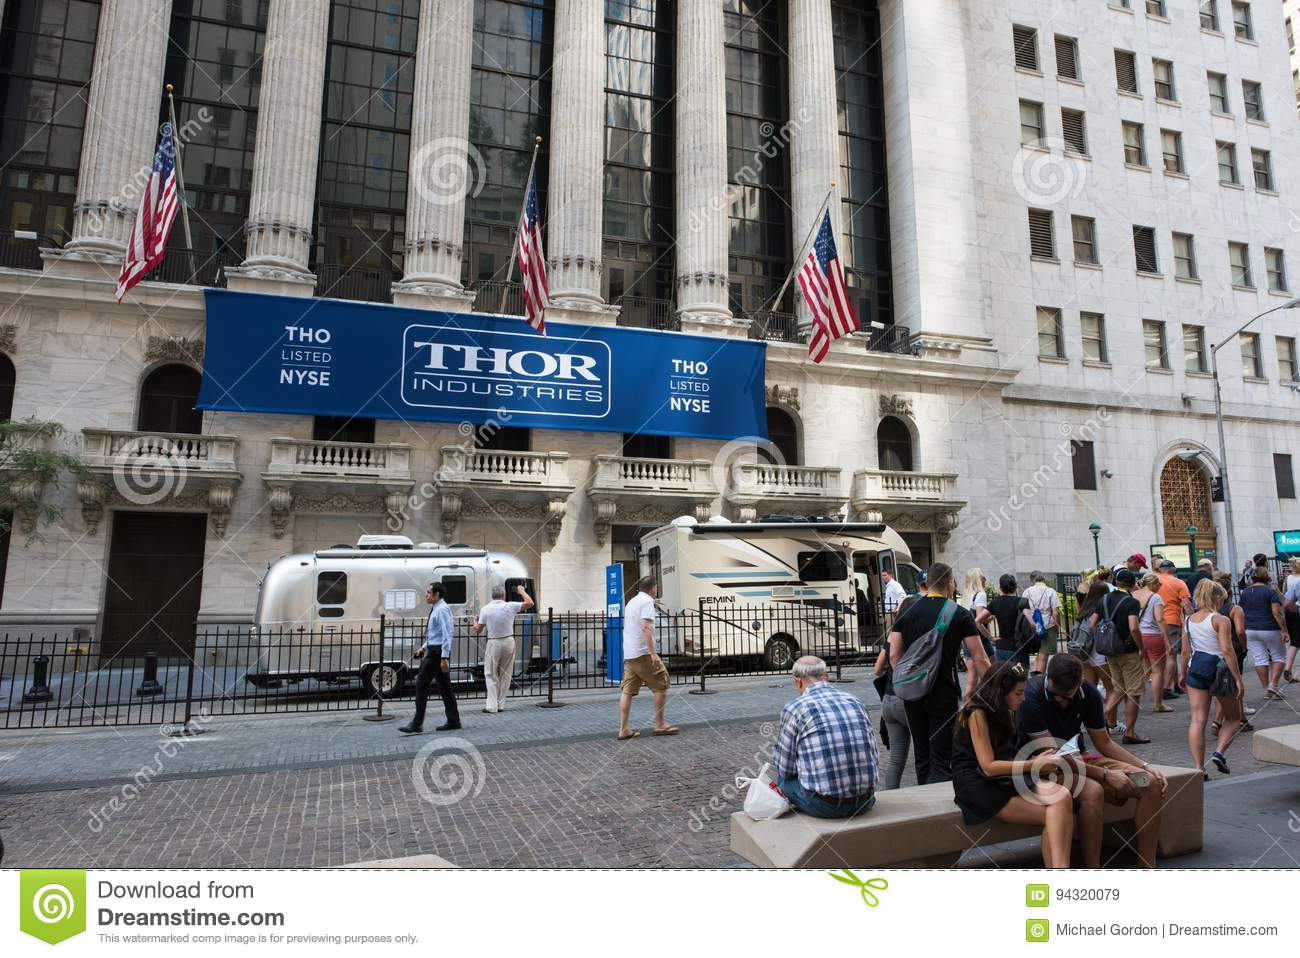 ae9b7427 New York, NY: August 27, 2016: Wall Street in NYC. The New York Stock  Exchange NYSE is the largest stock exchange in the world by market cap.